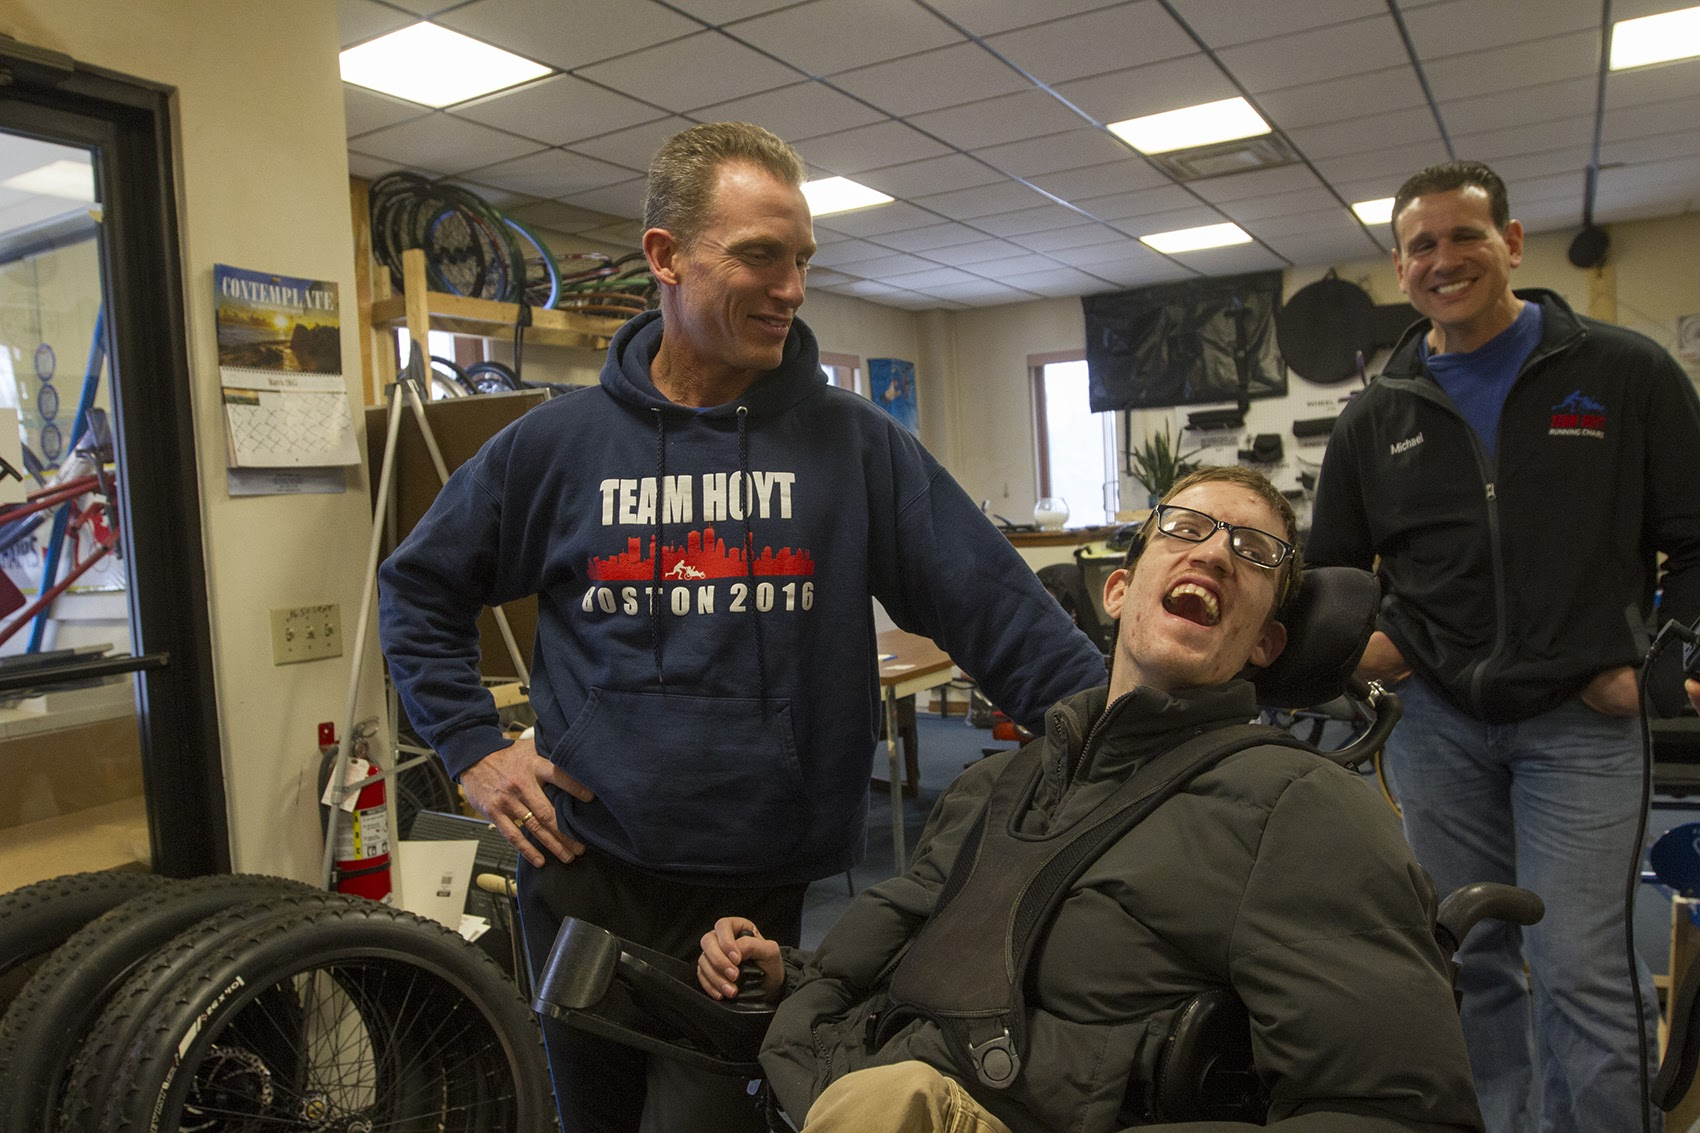 Ted Painter, left, and Nick Draper, will be competing in the 2017 Boston Marathon, using a chair built at Southbridge Tool and Manufacturing. Mike DiDonato, right, helped steer his family's business into making Team Hoyt Running Chairs. (Joe Difazio for WBUR)